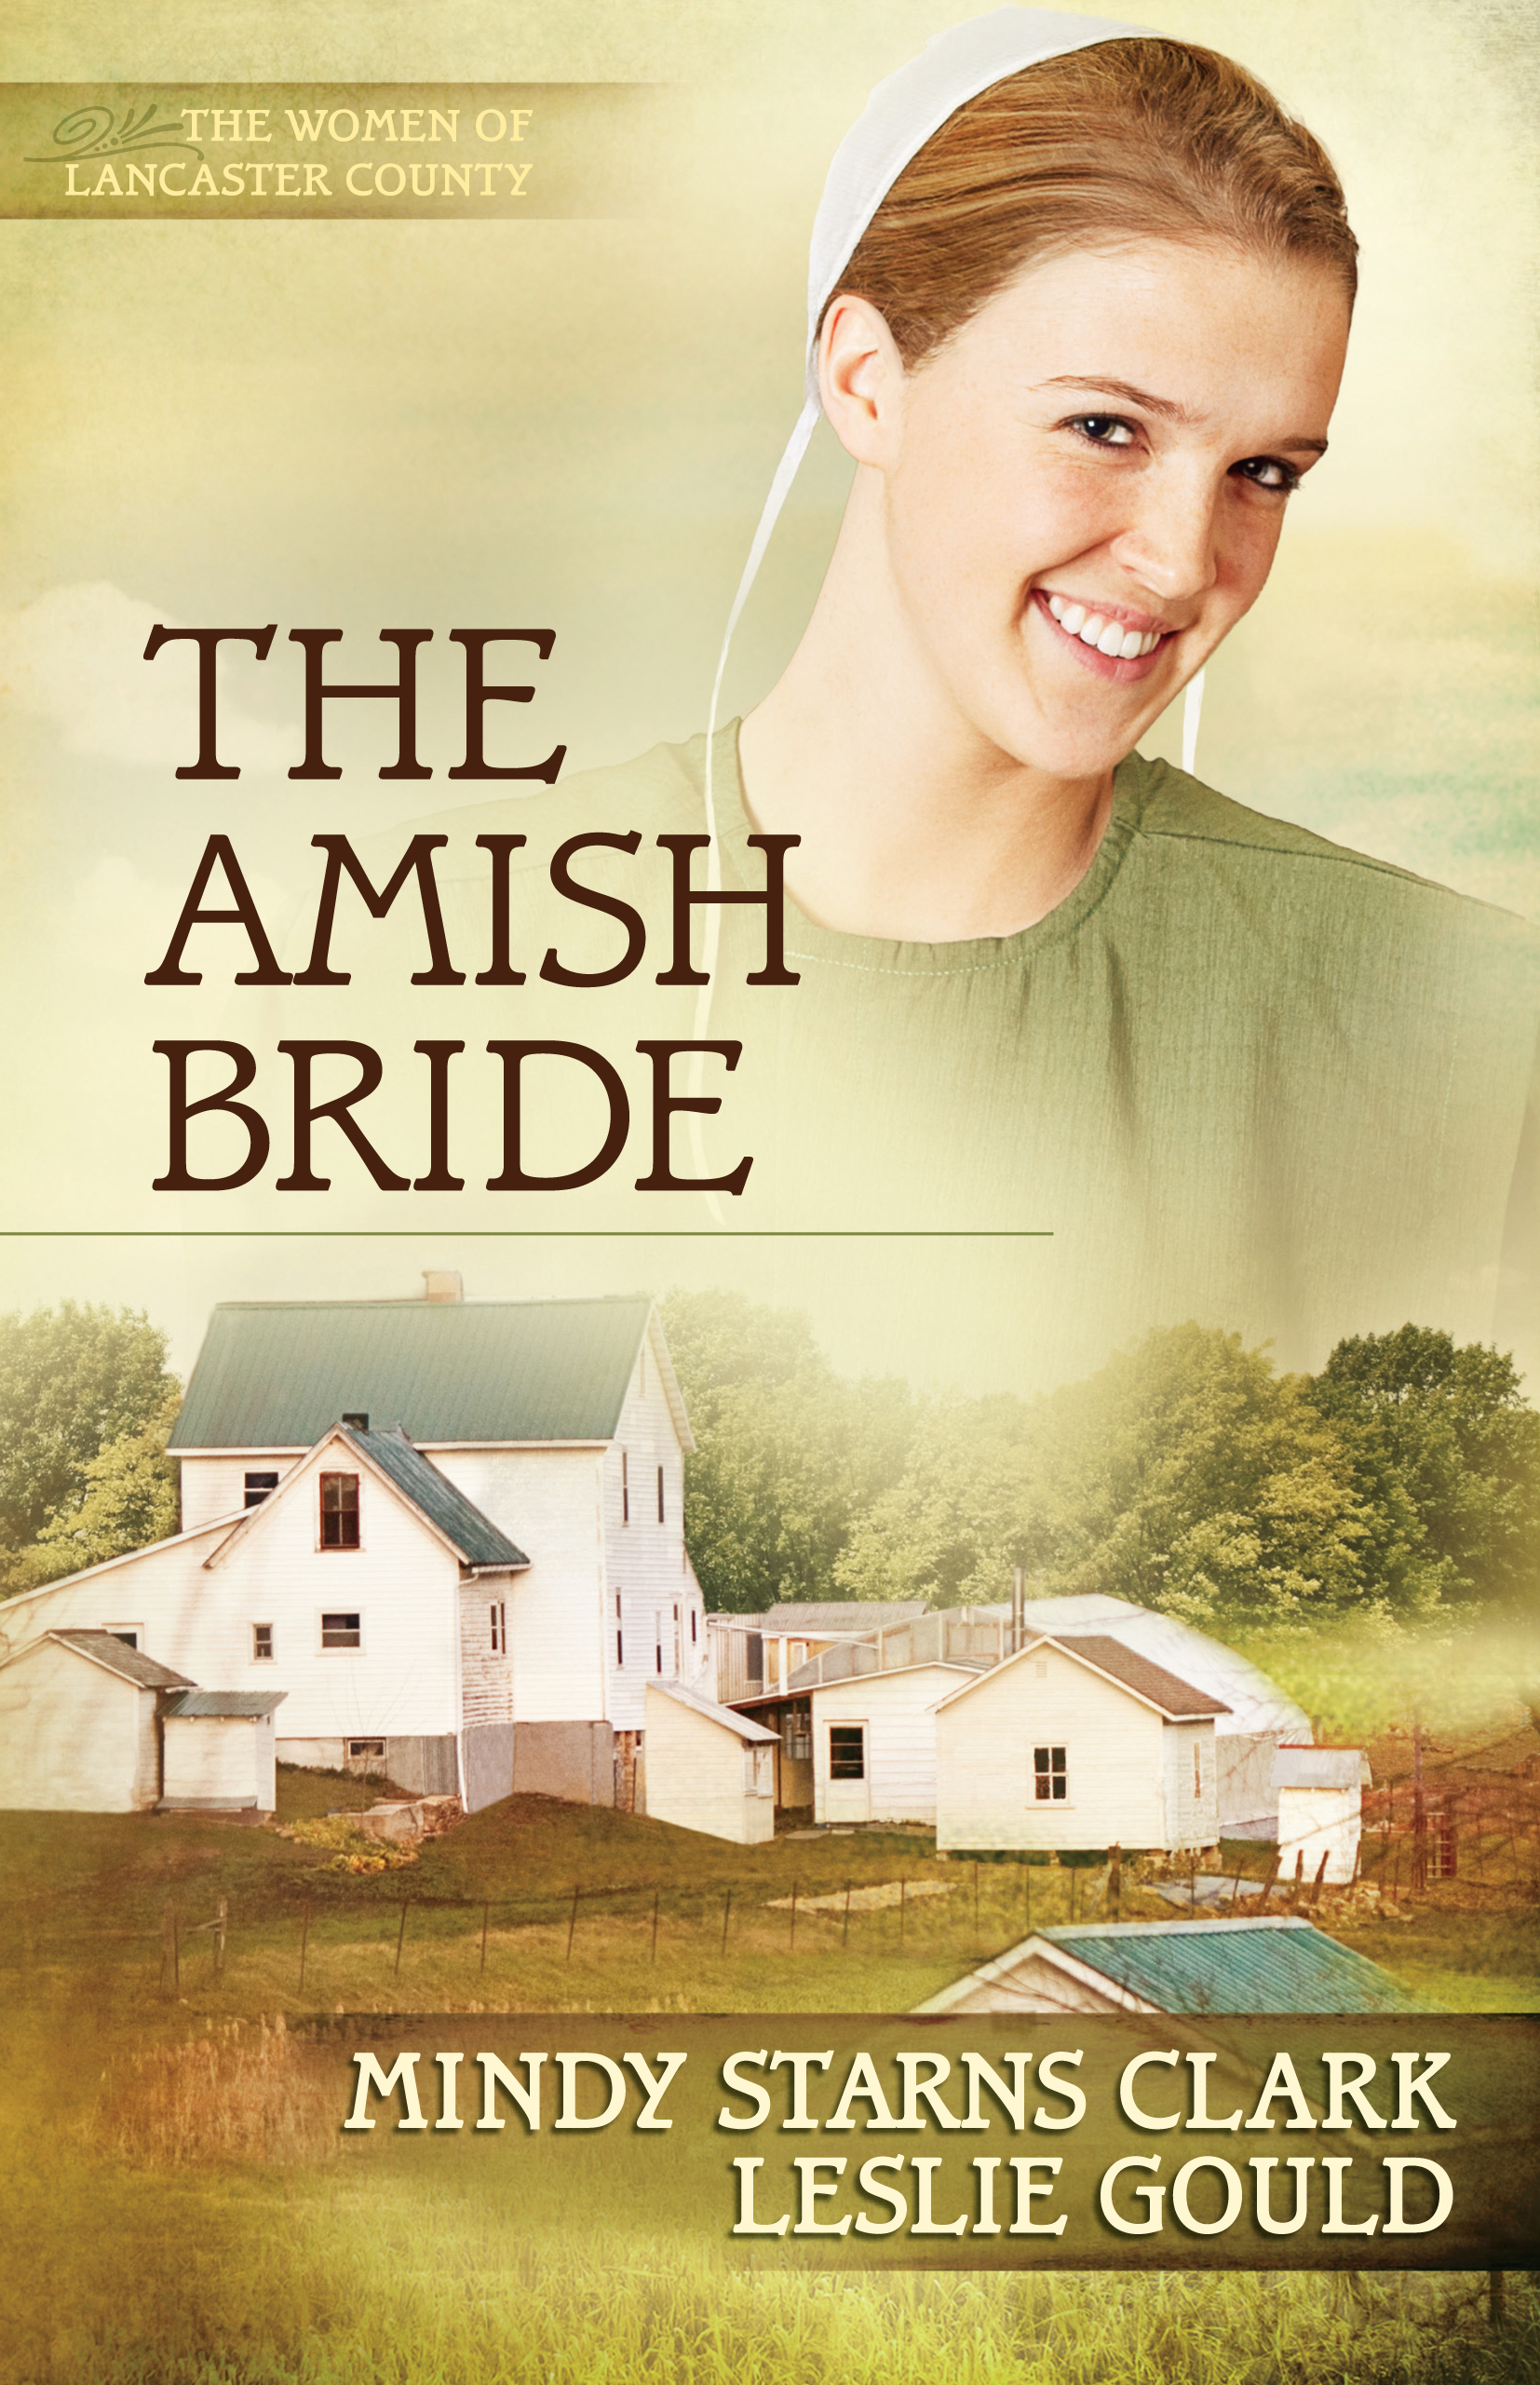 The Amish Bride By: Leslie Gould,Mindy Starns Clark